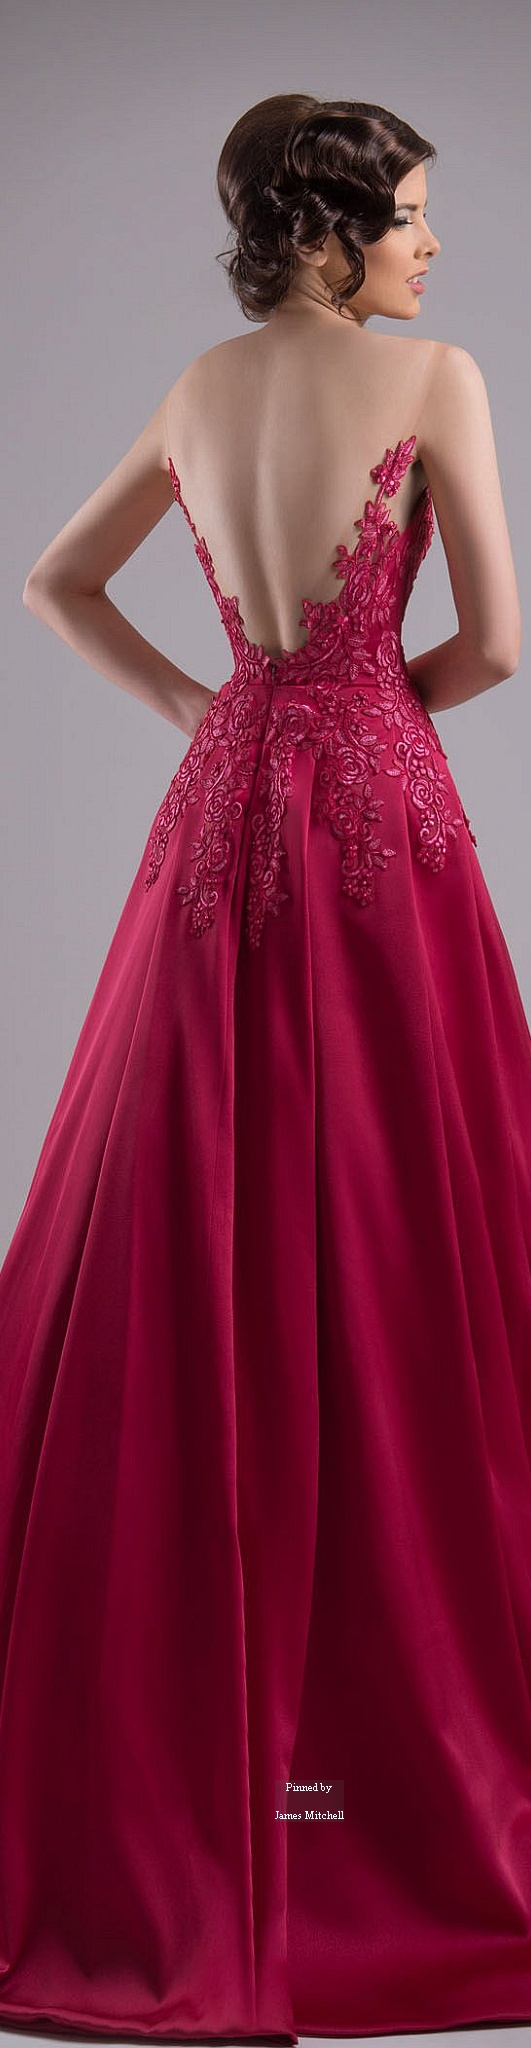 Chrystelle Atallah ~ Couture Spring Ruby Red Gown w Open Back Cascading Embroidery + Full Pleated Skirt  2015